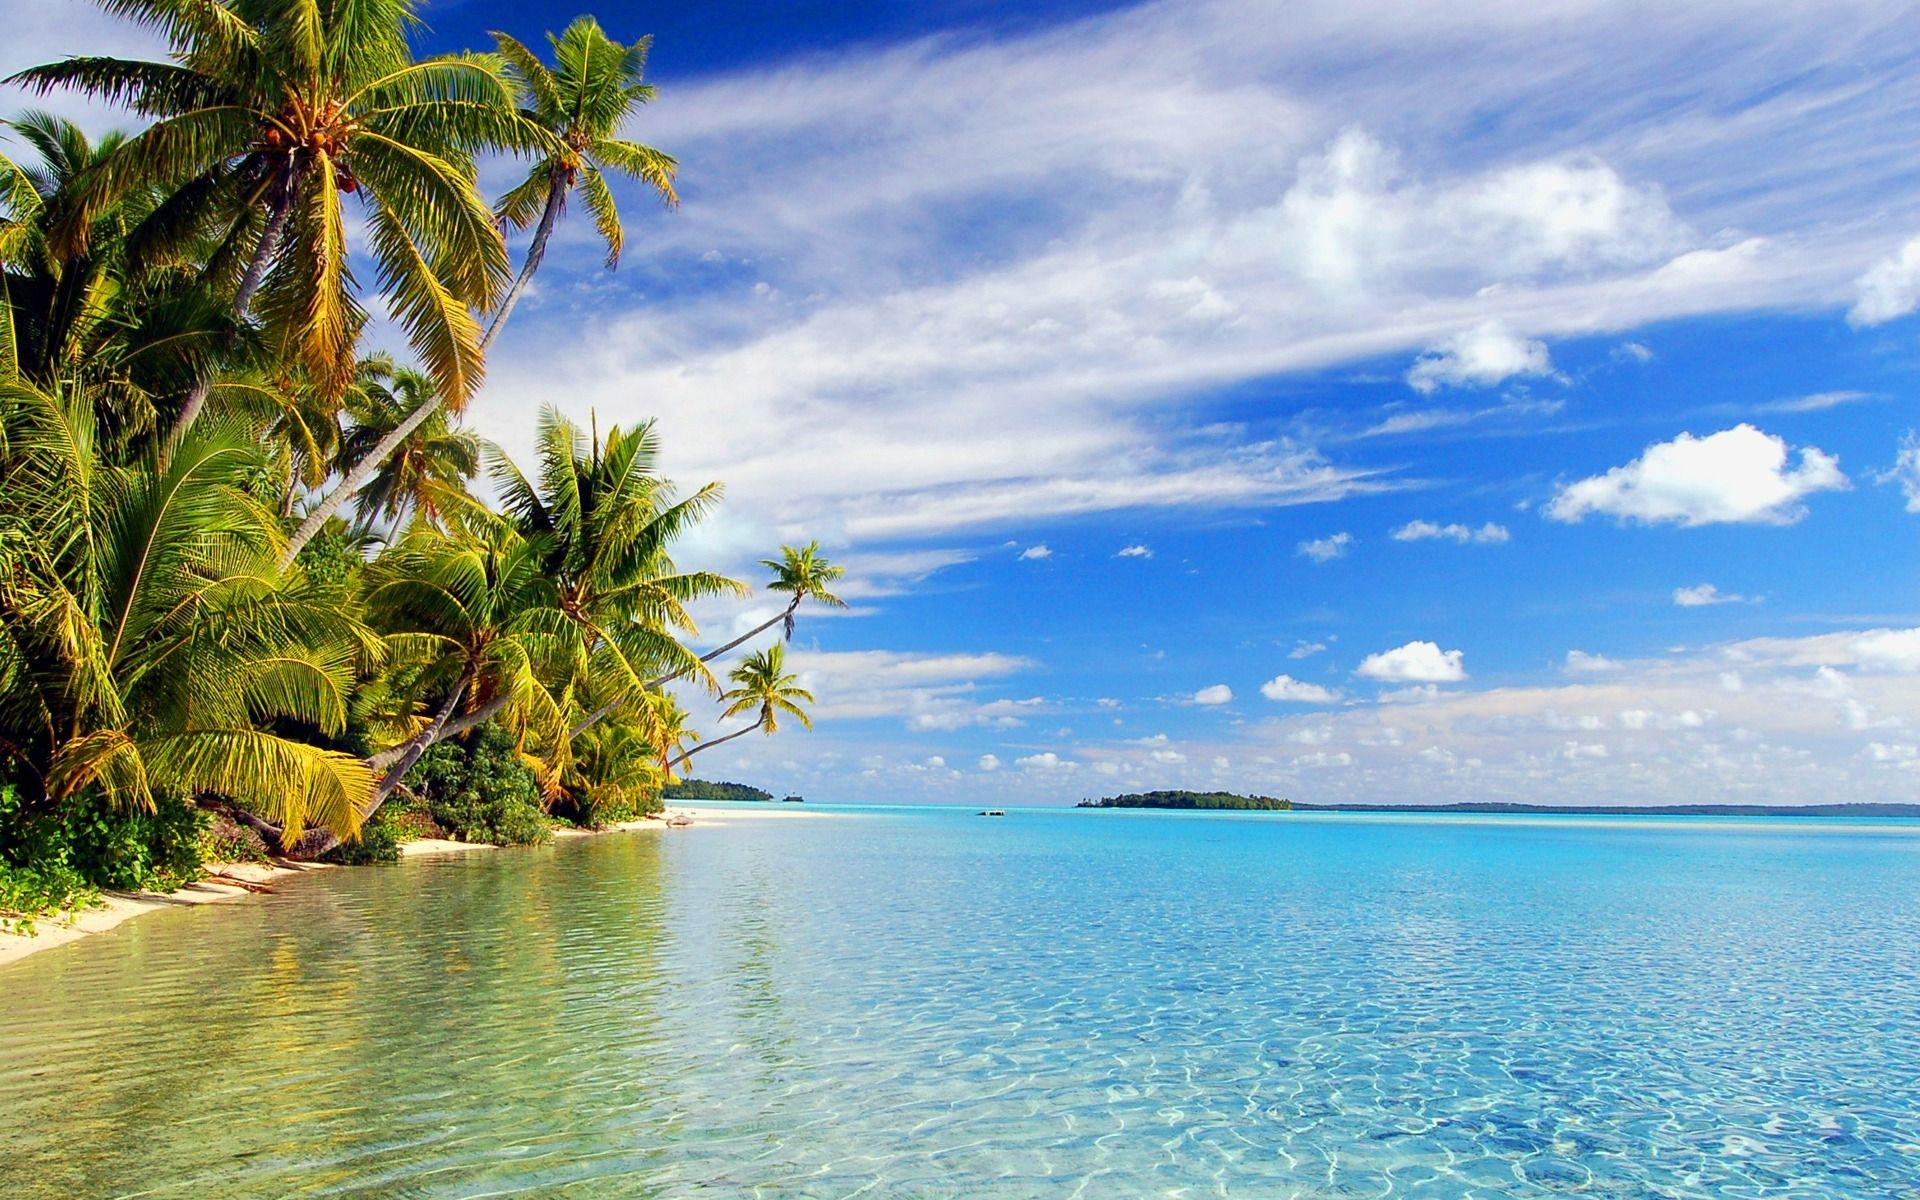 Aitutaki Lagoon Wallpapers Beaches Nature Wallpapers in jpg format